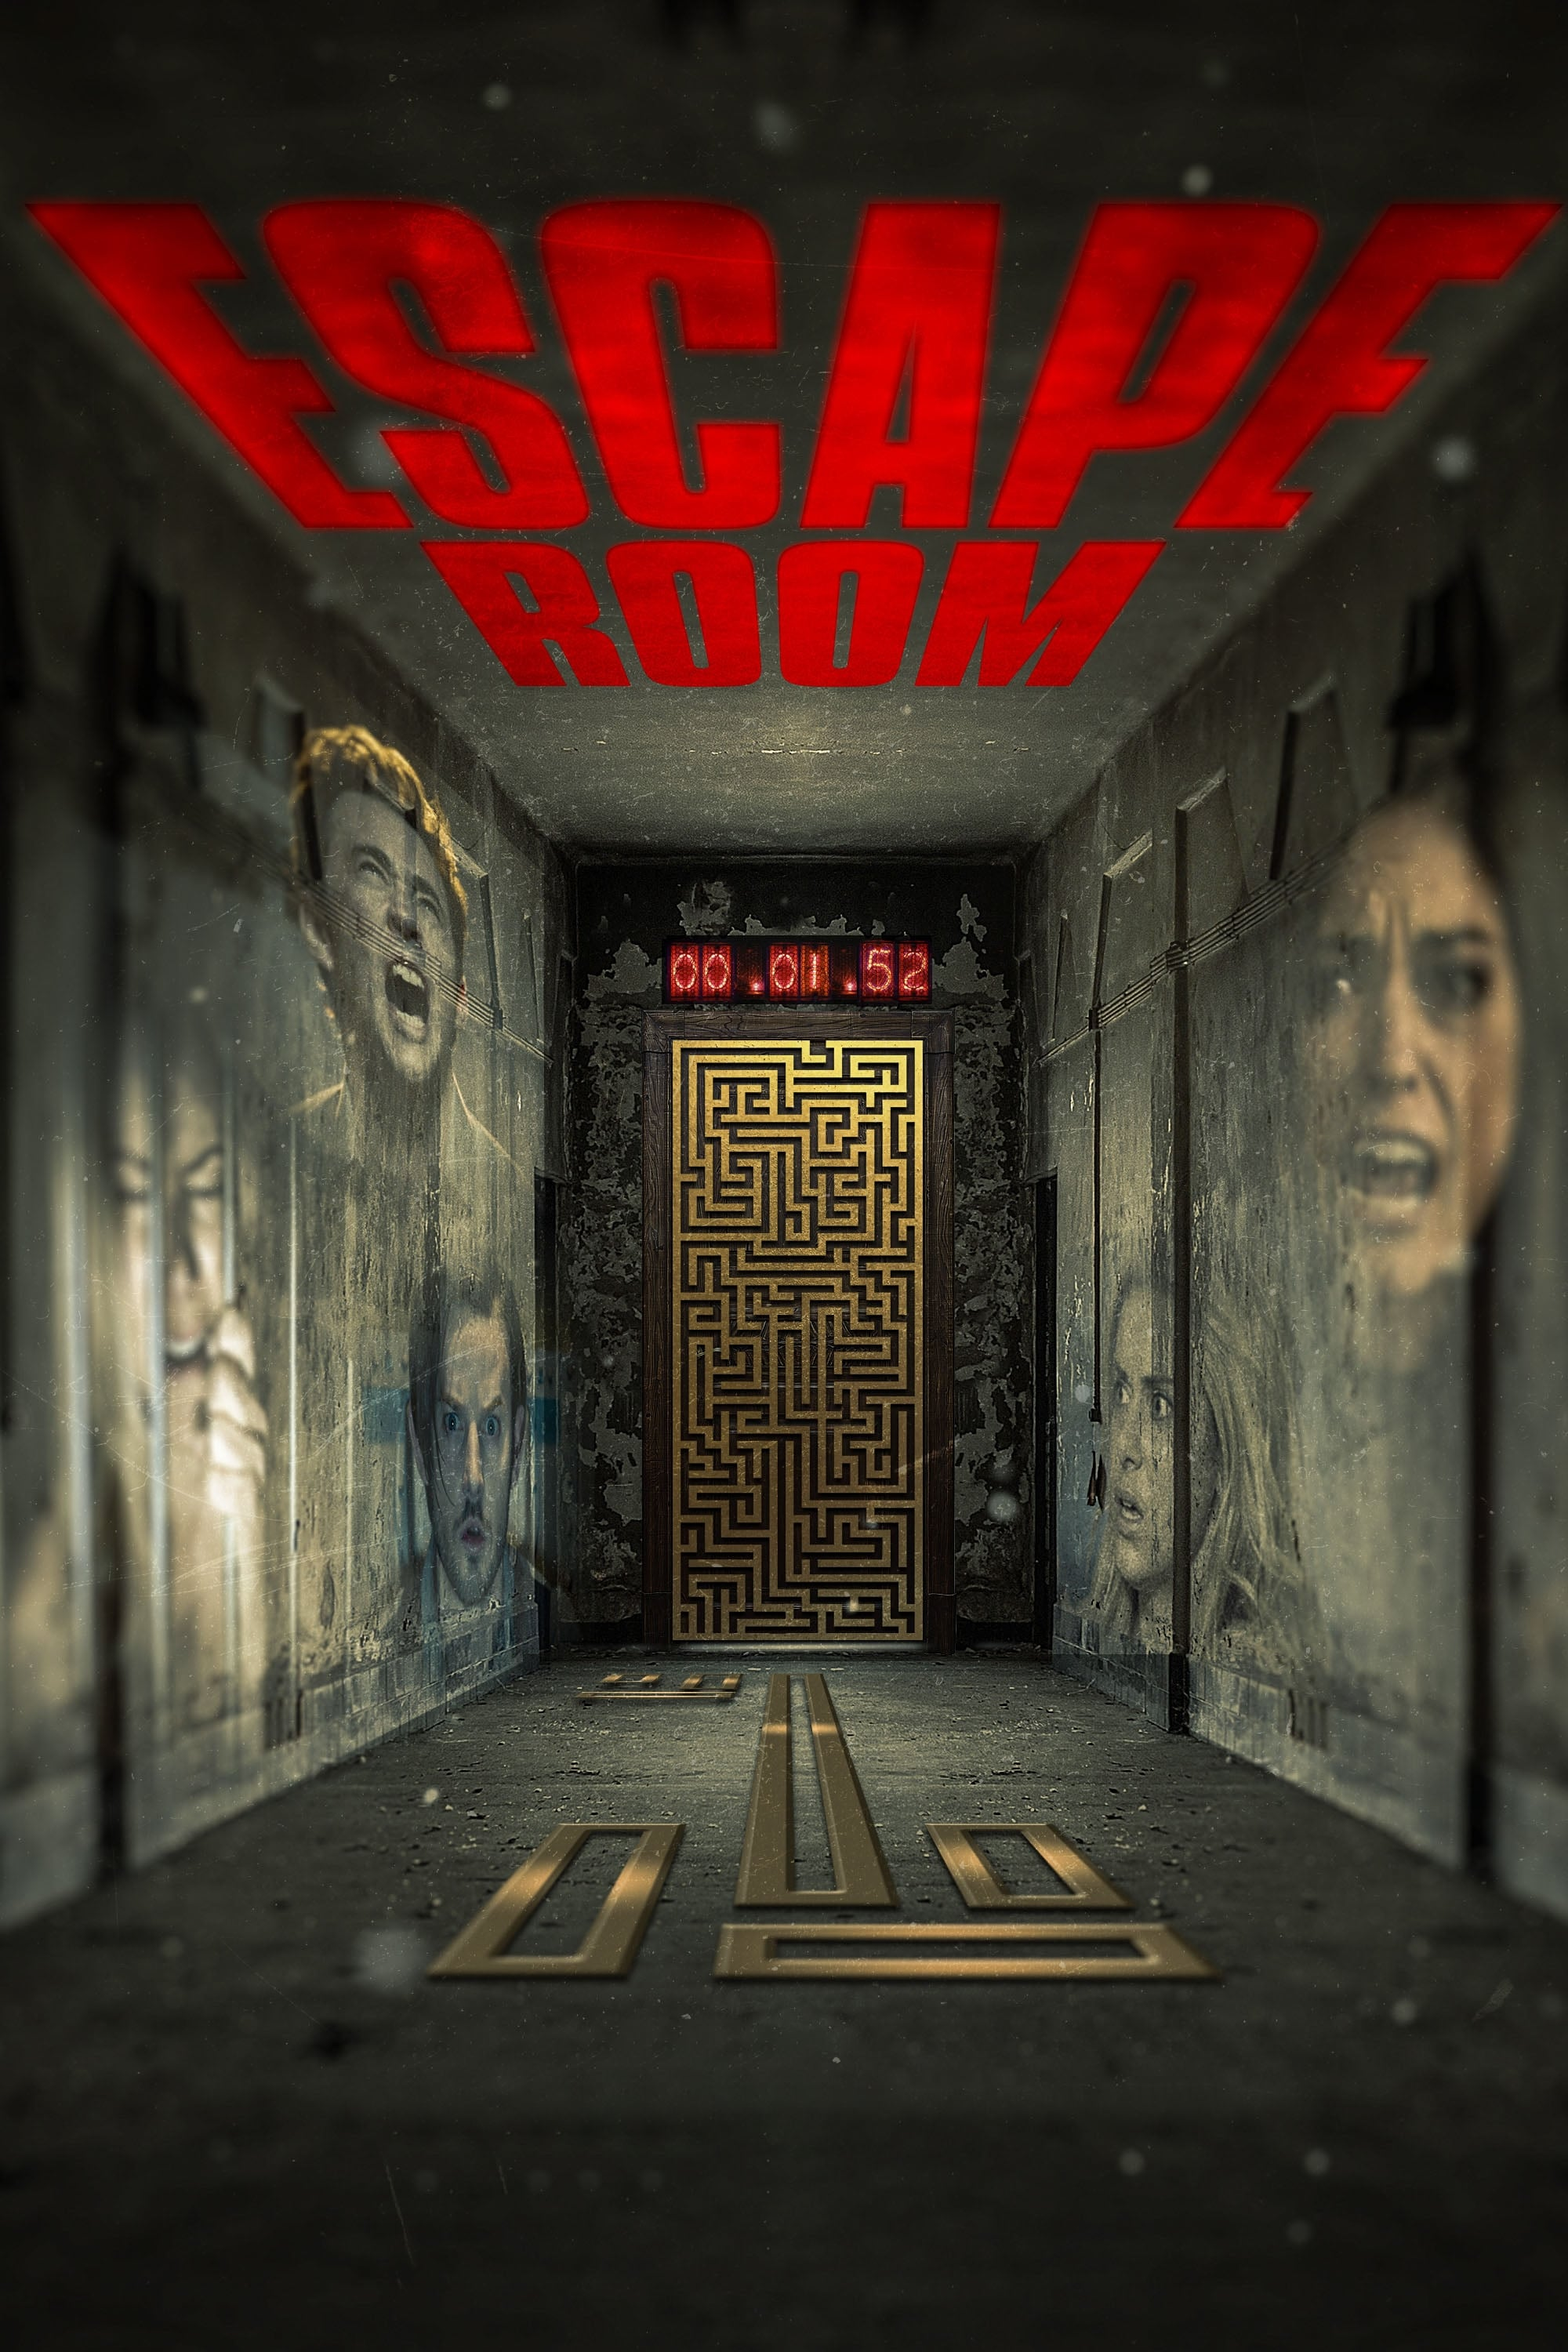 Escape room wiki synopsis reviews movies rankings for Escape room concept